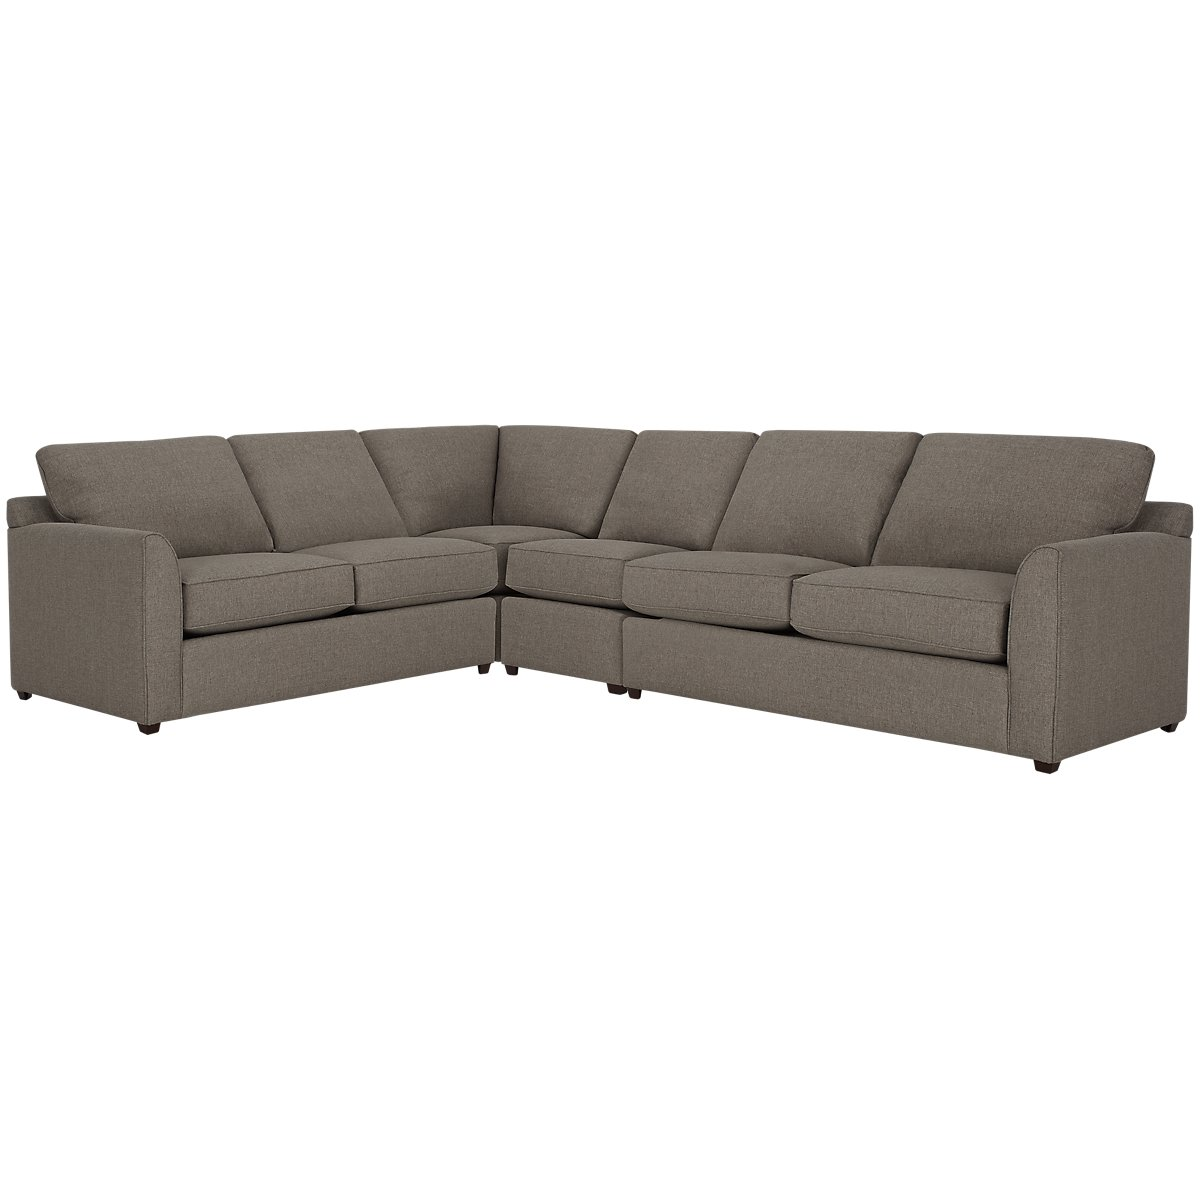 Asheville Brown Fabric Large Two-Arm Sectional